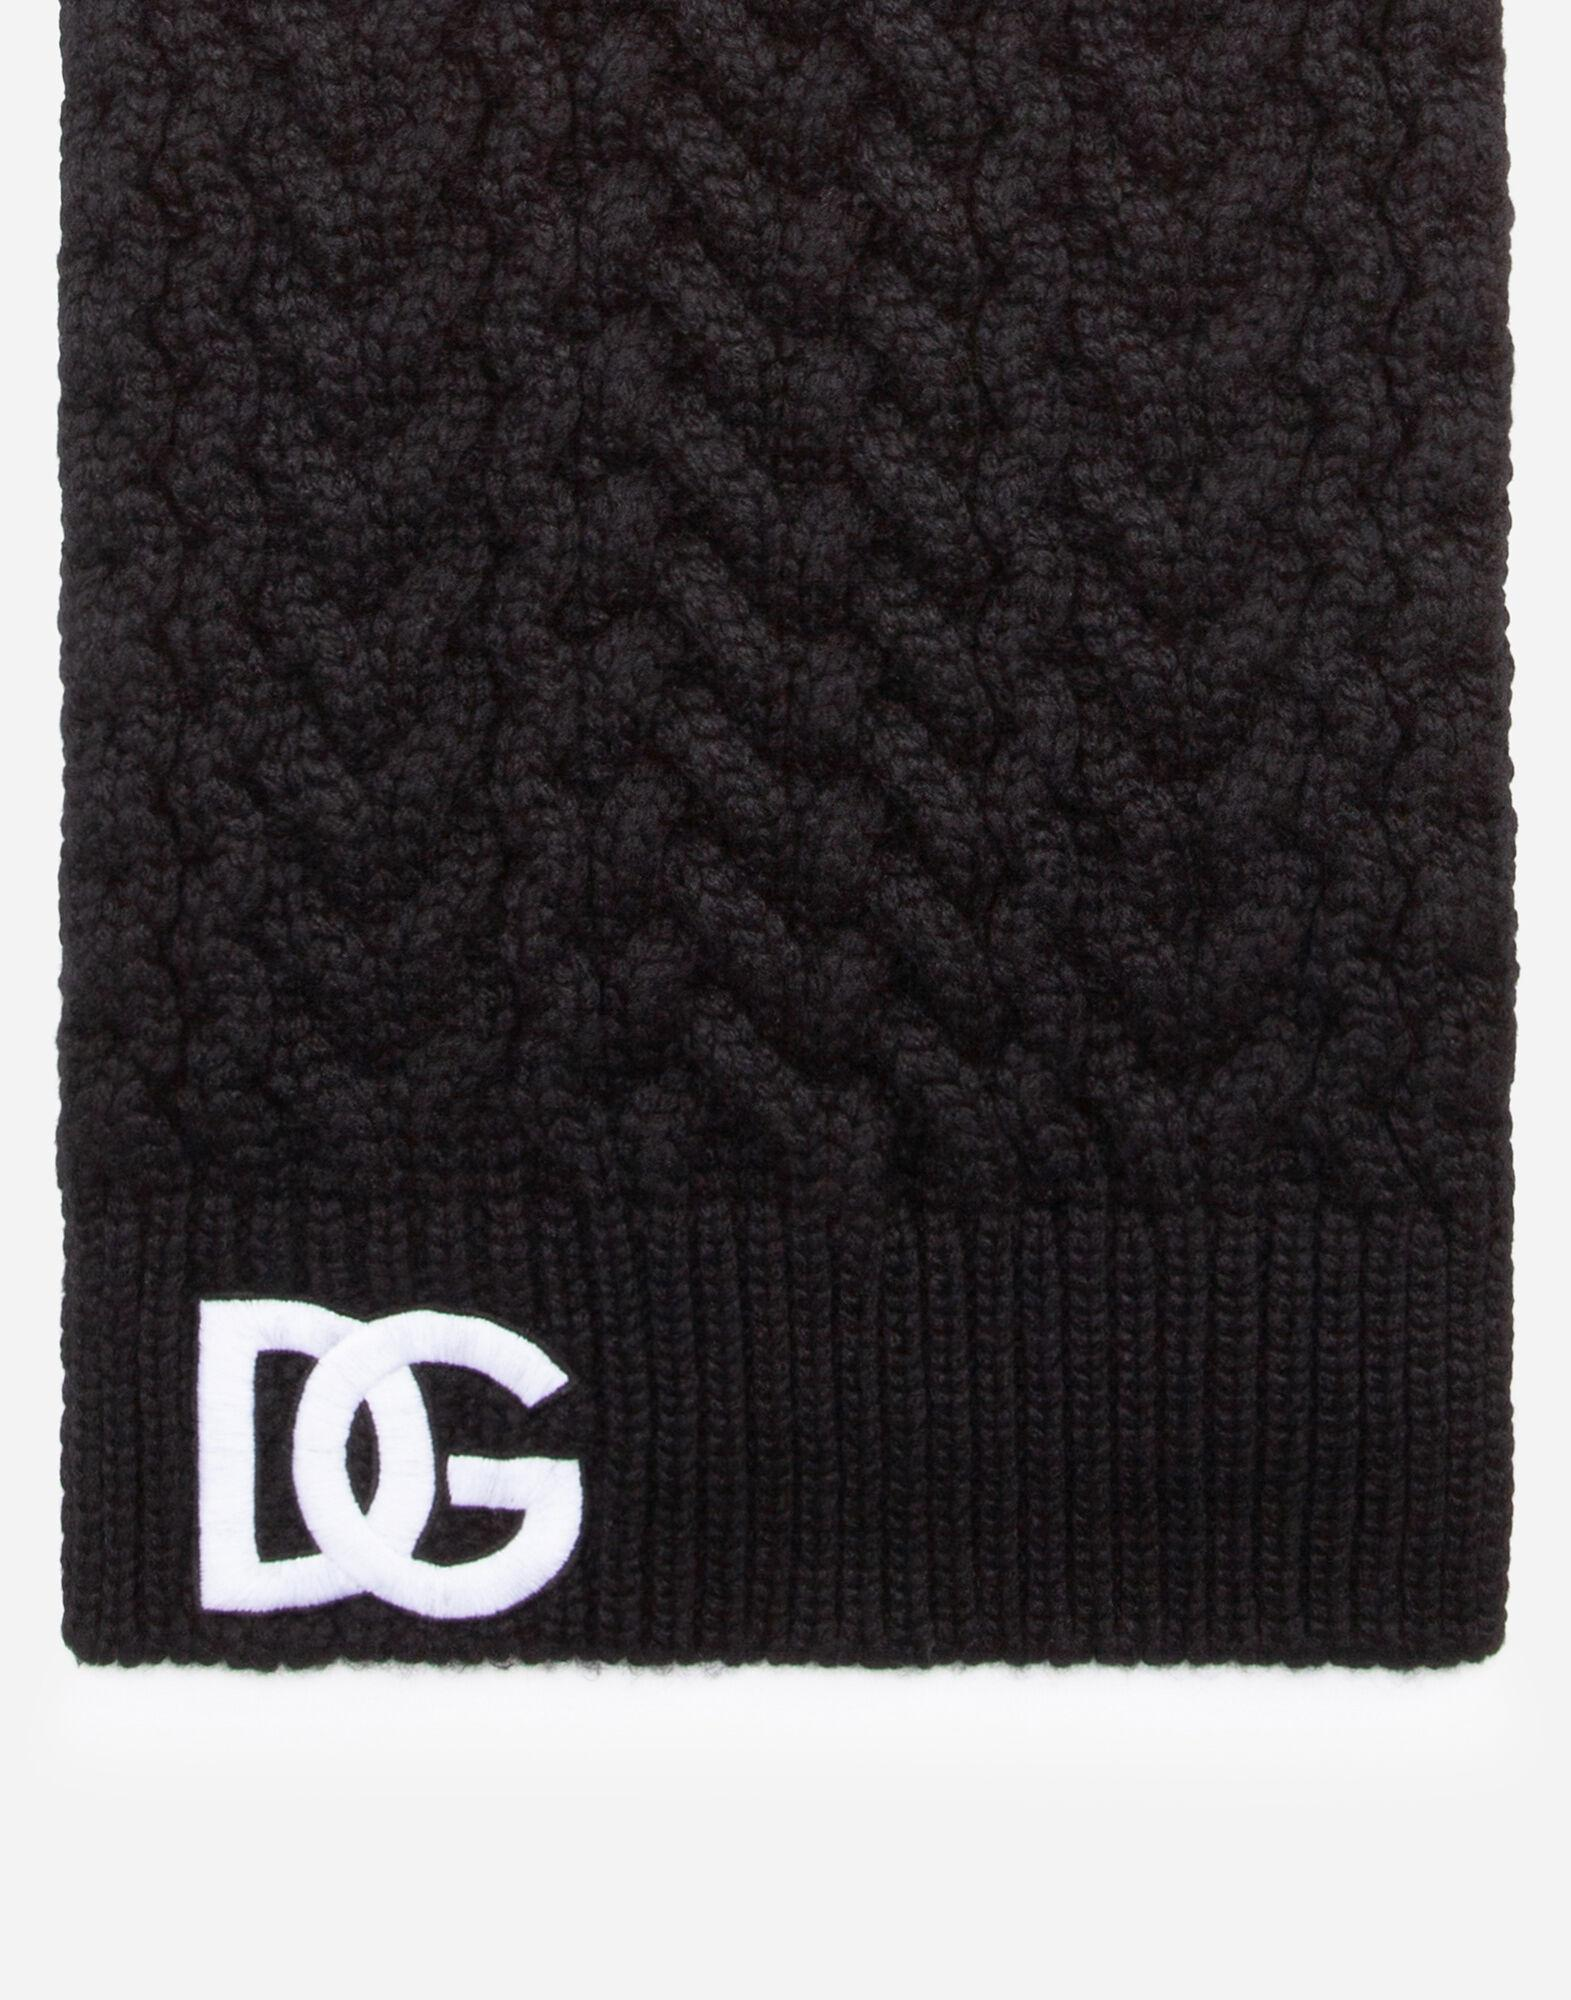 Wool scarf with logo embroidery 1